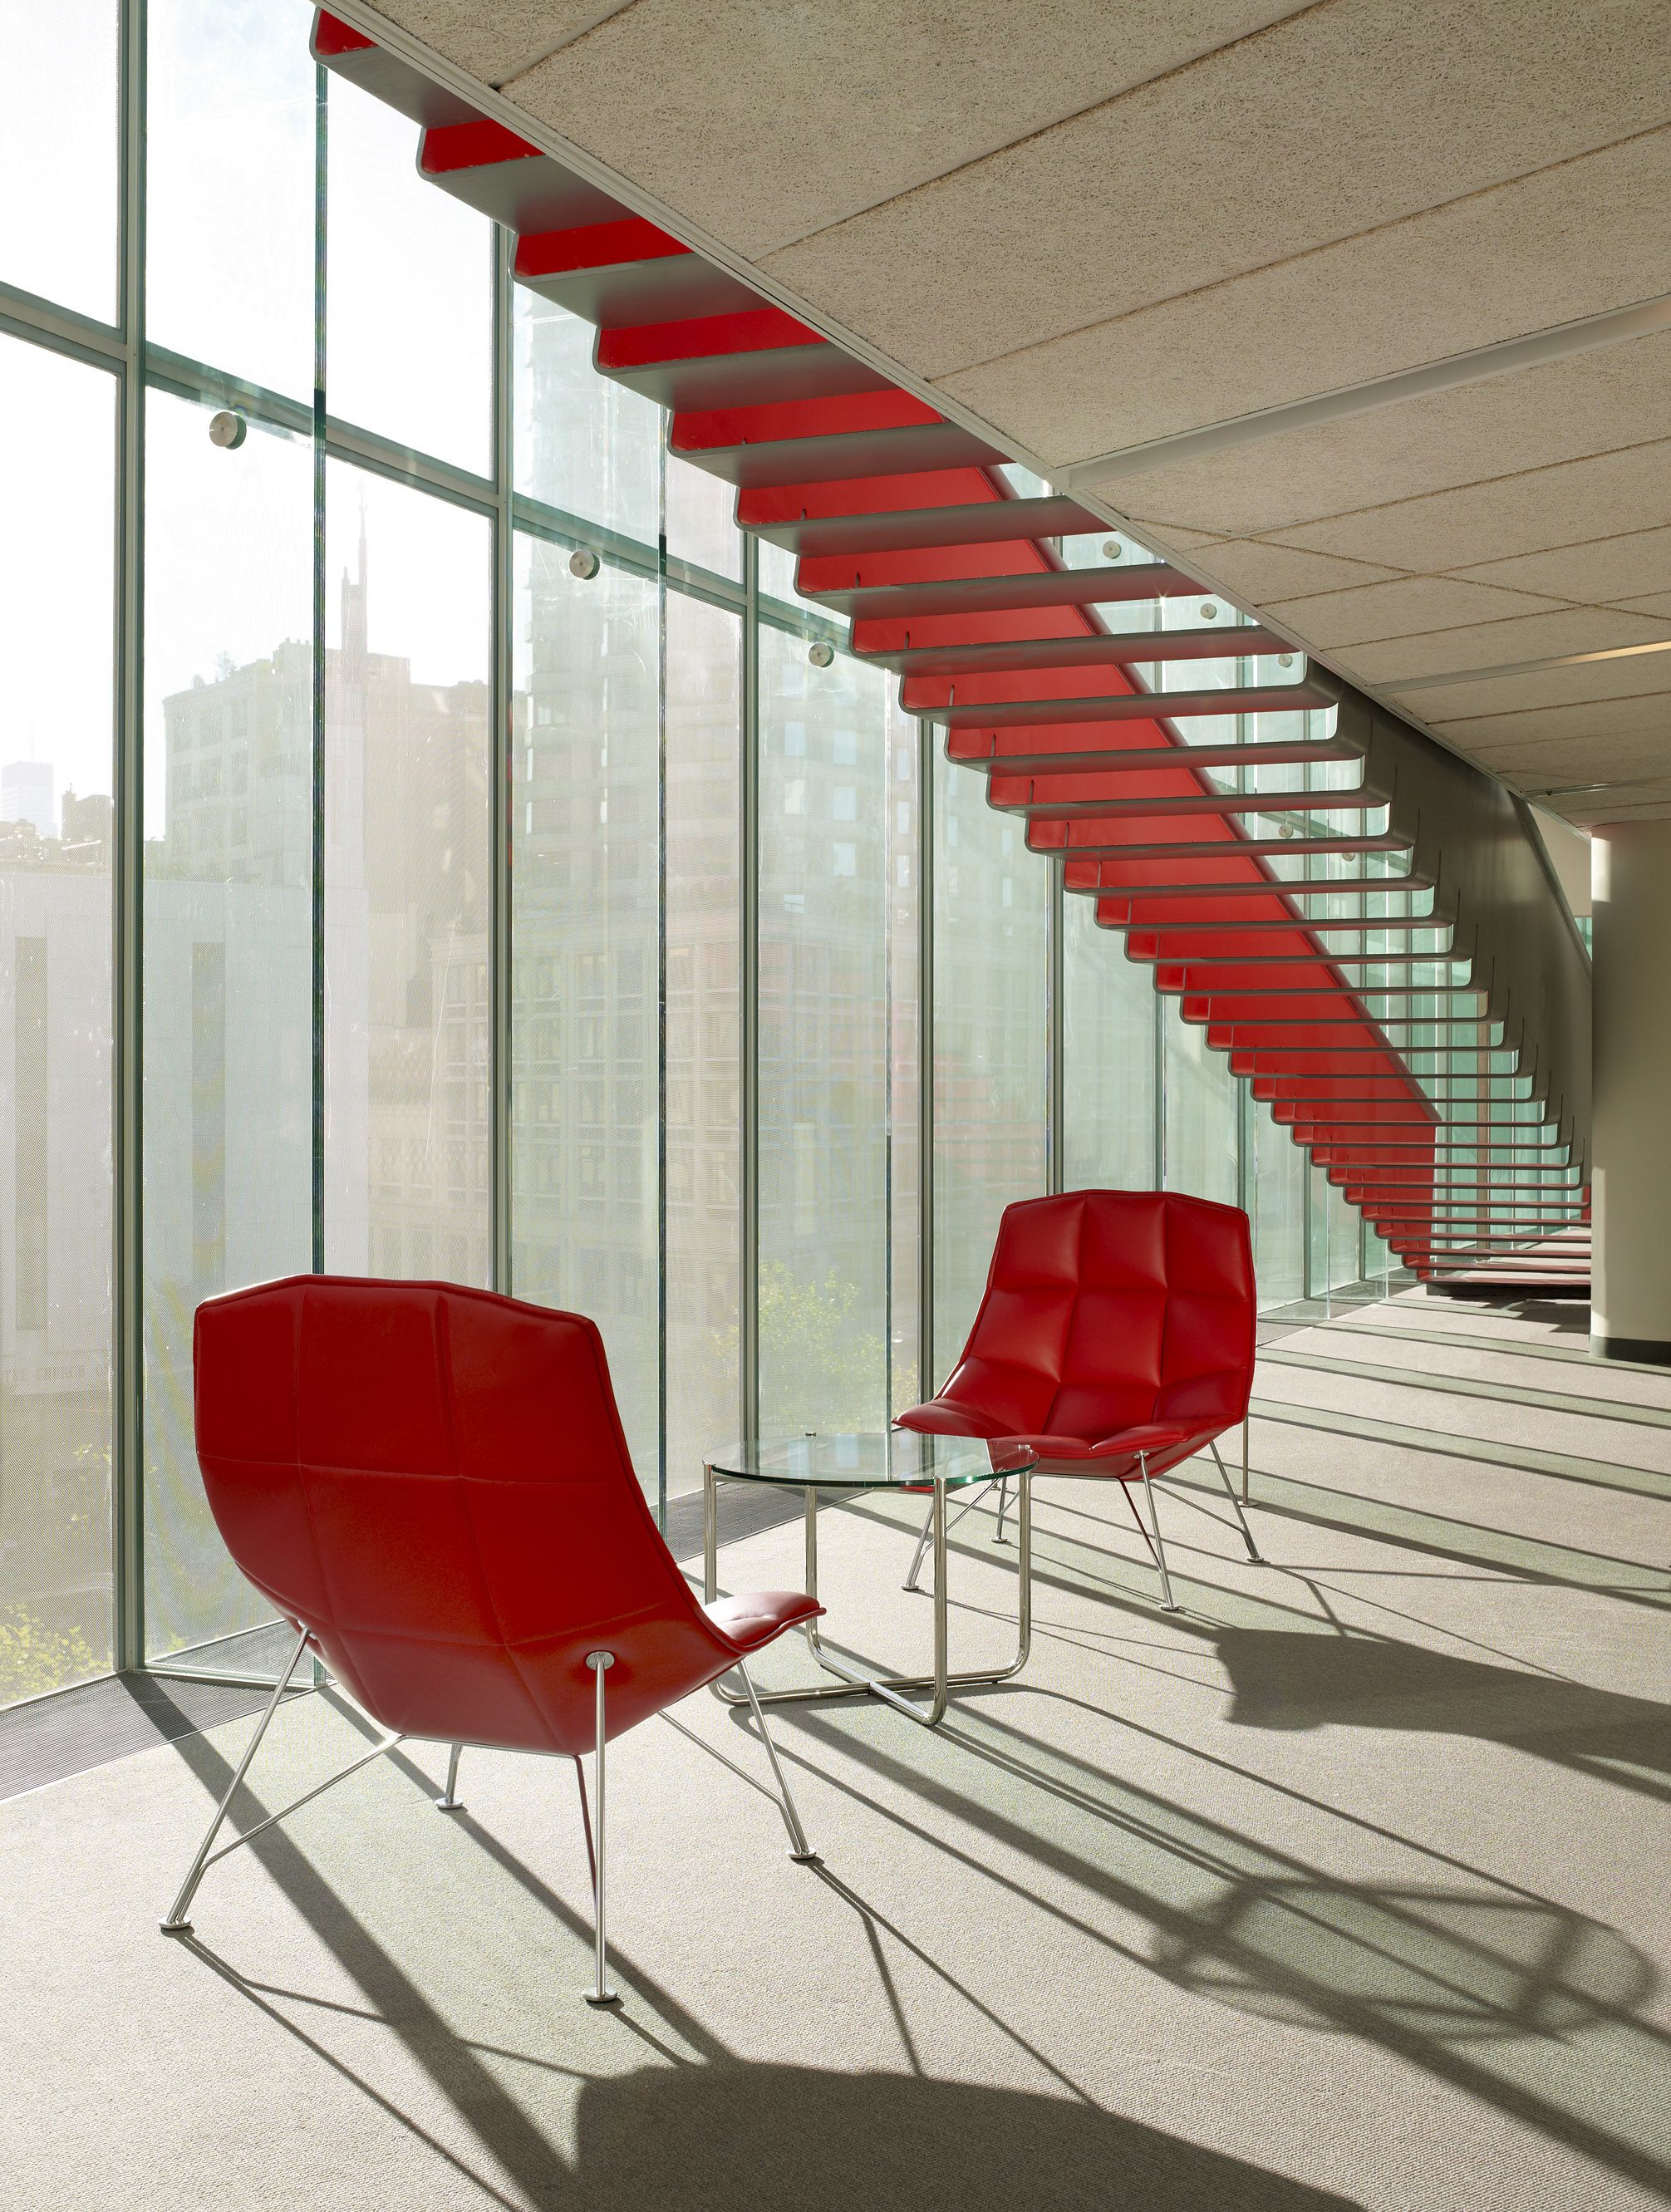 Jehs laub lounge chair also knoll for education pinterest rh